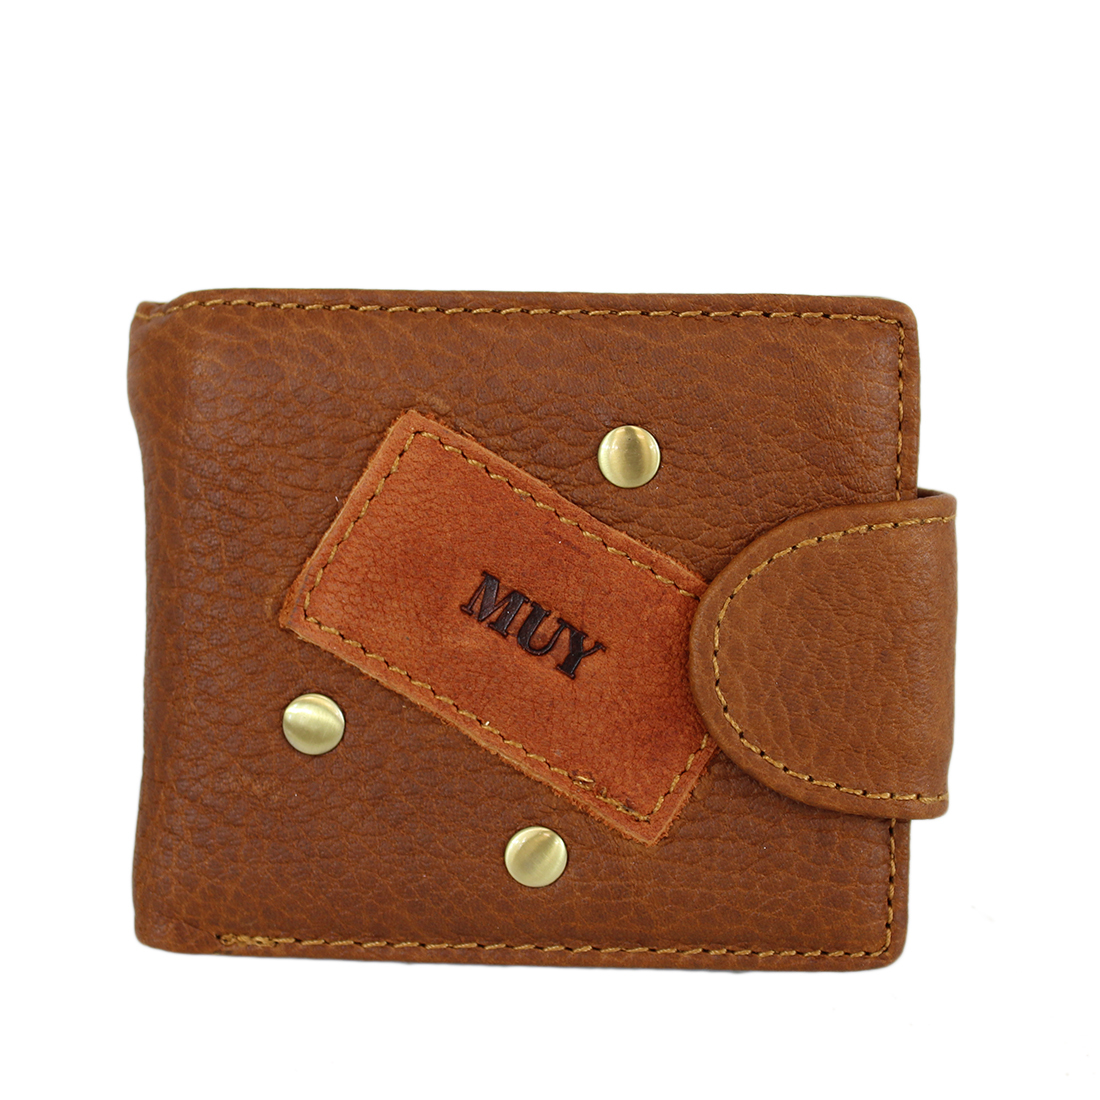 Real leather multifunctional zip wallet